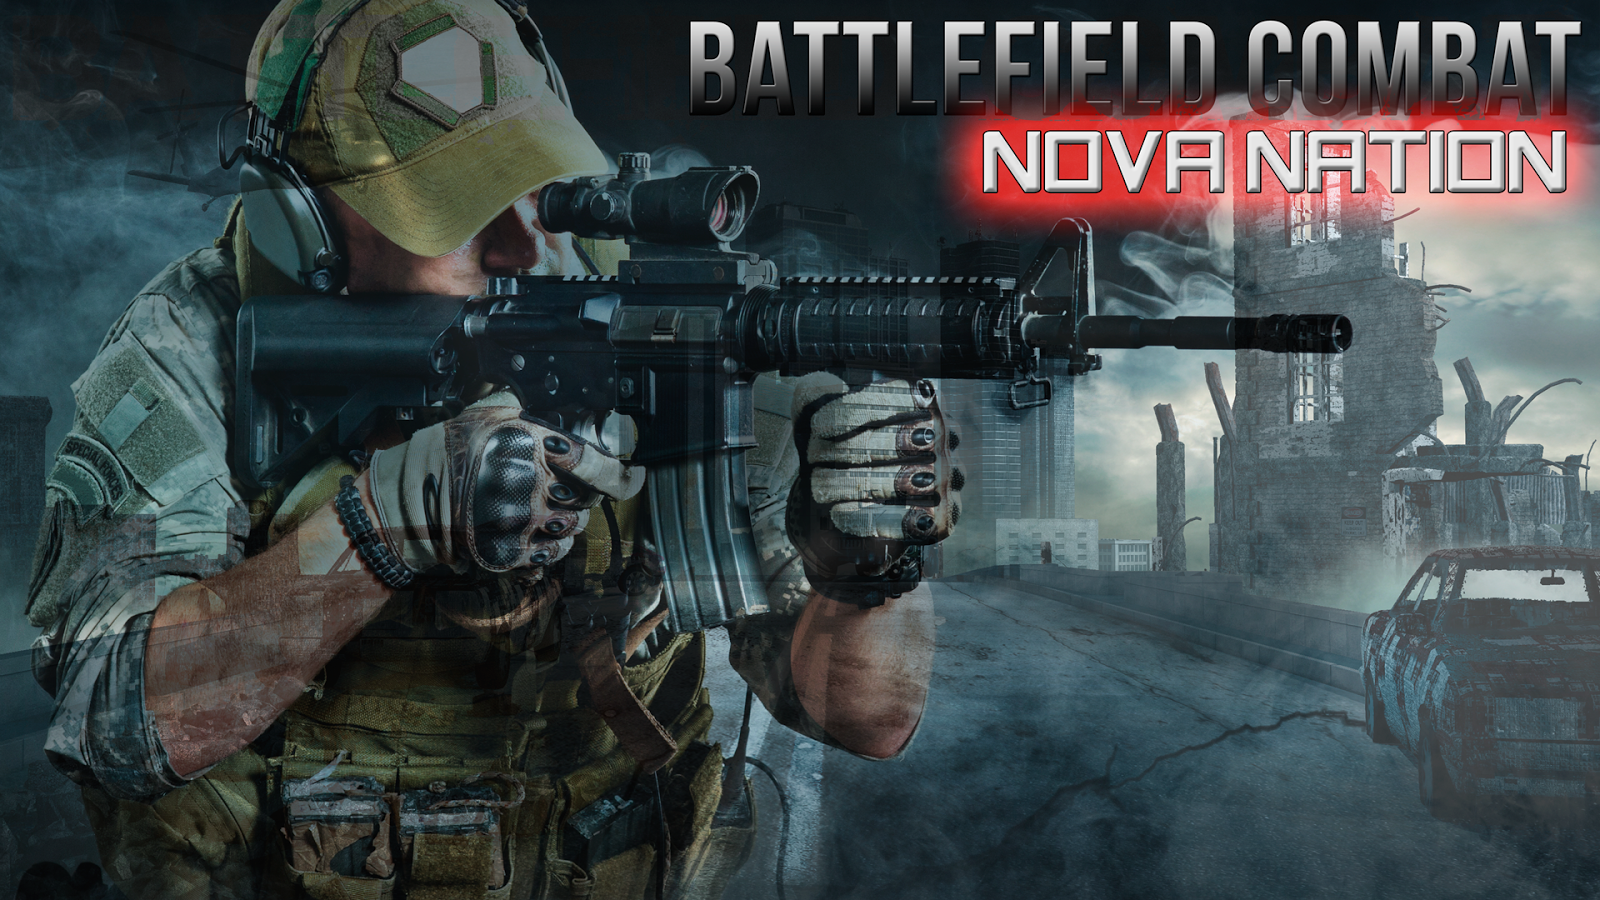 Battlefield Combat Nova Nation vBFI_1.0.13 Mod